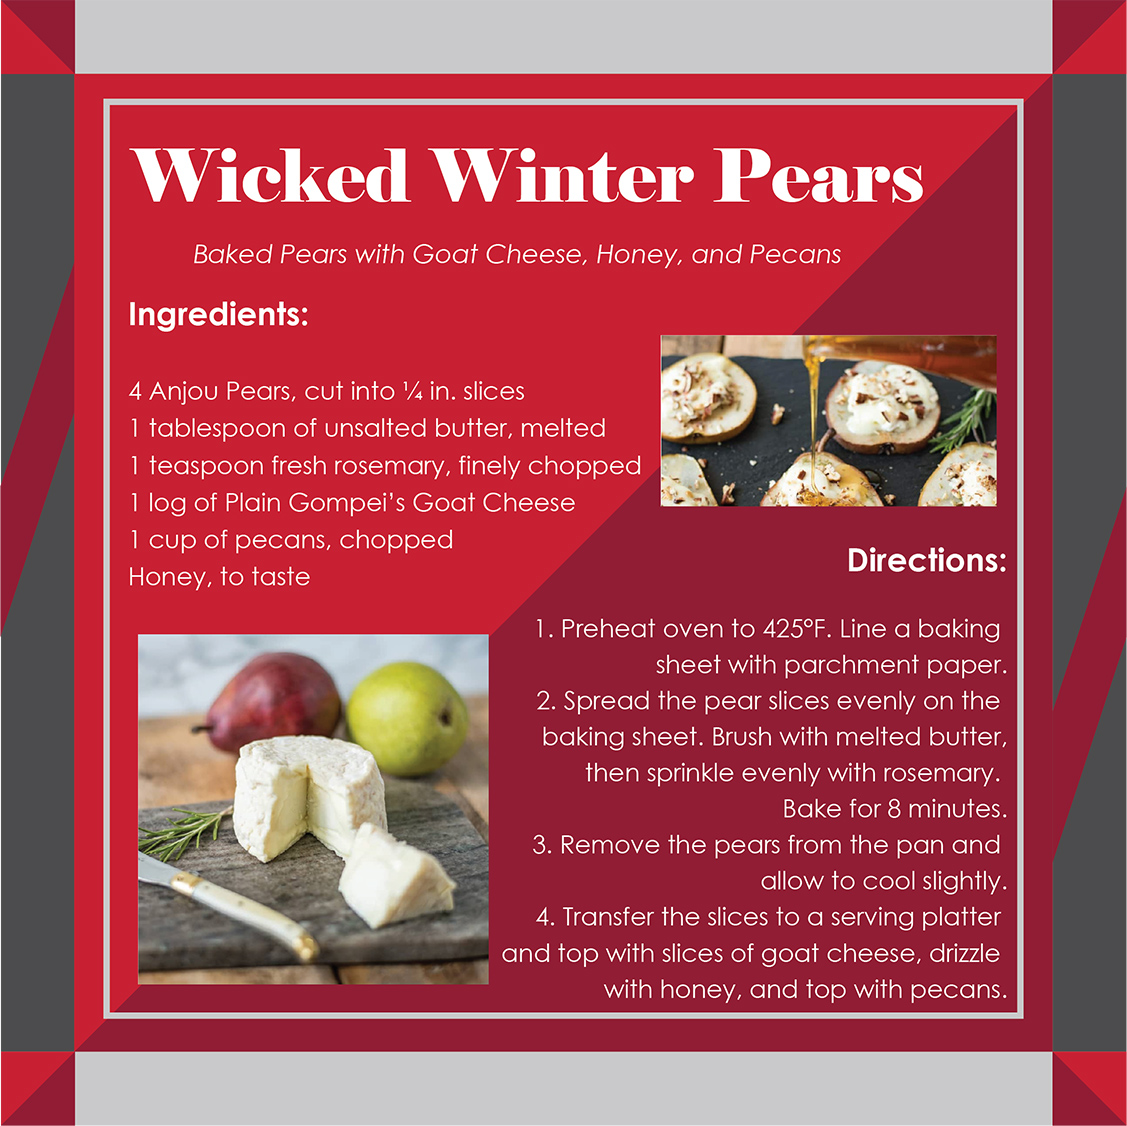 Wicked Winder Pears